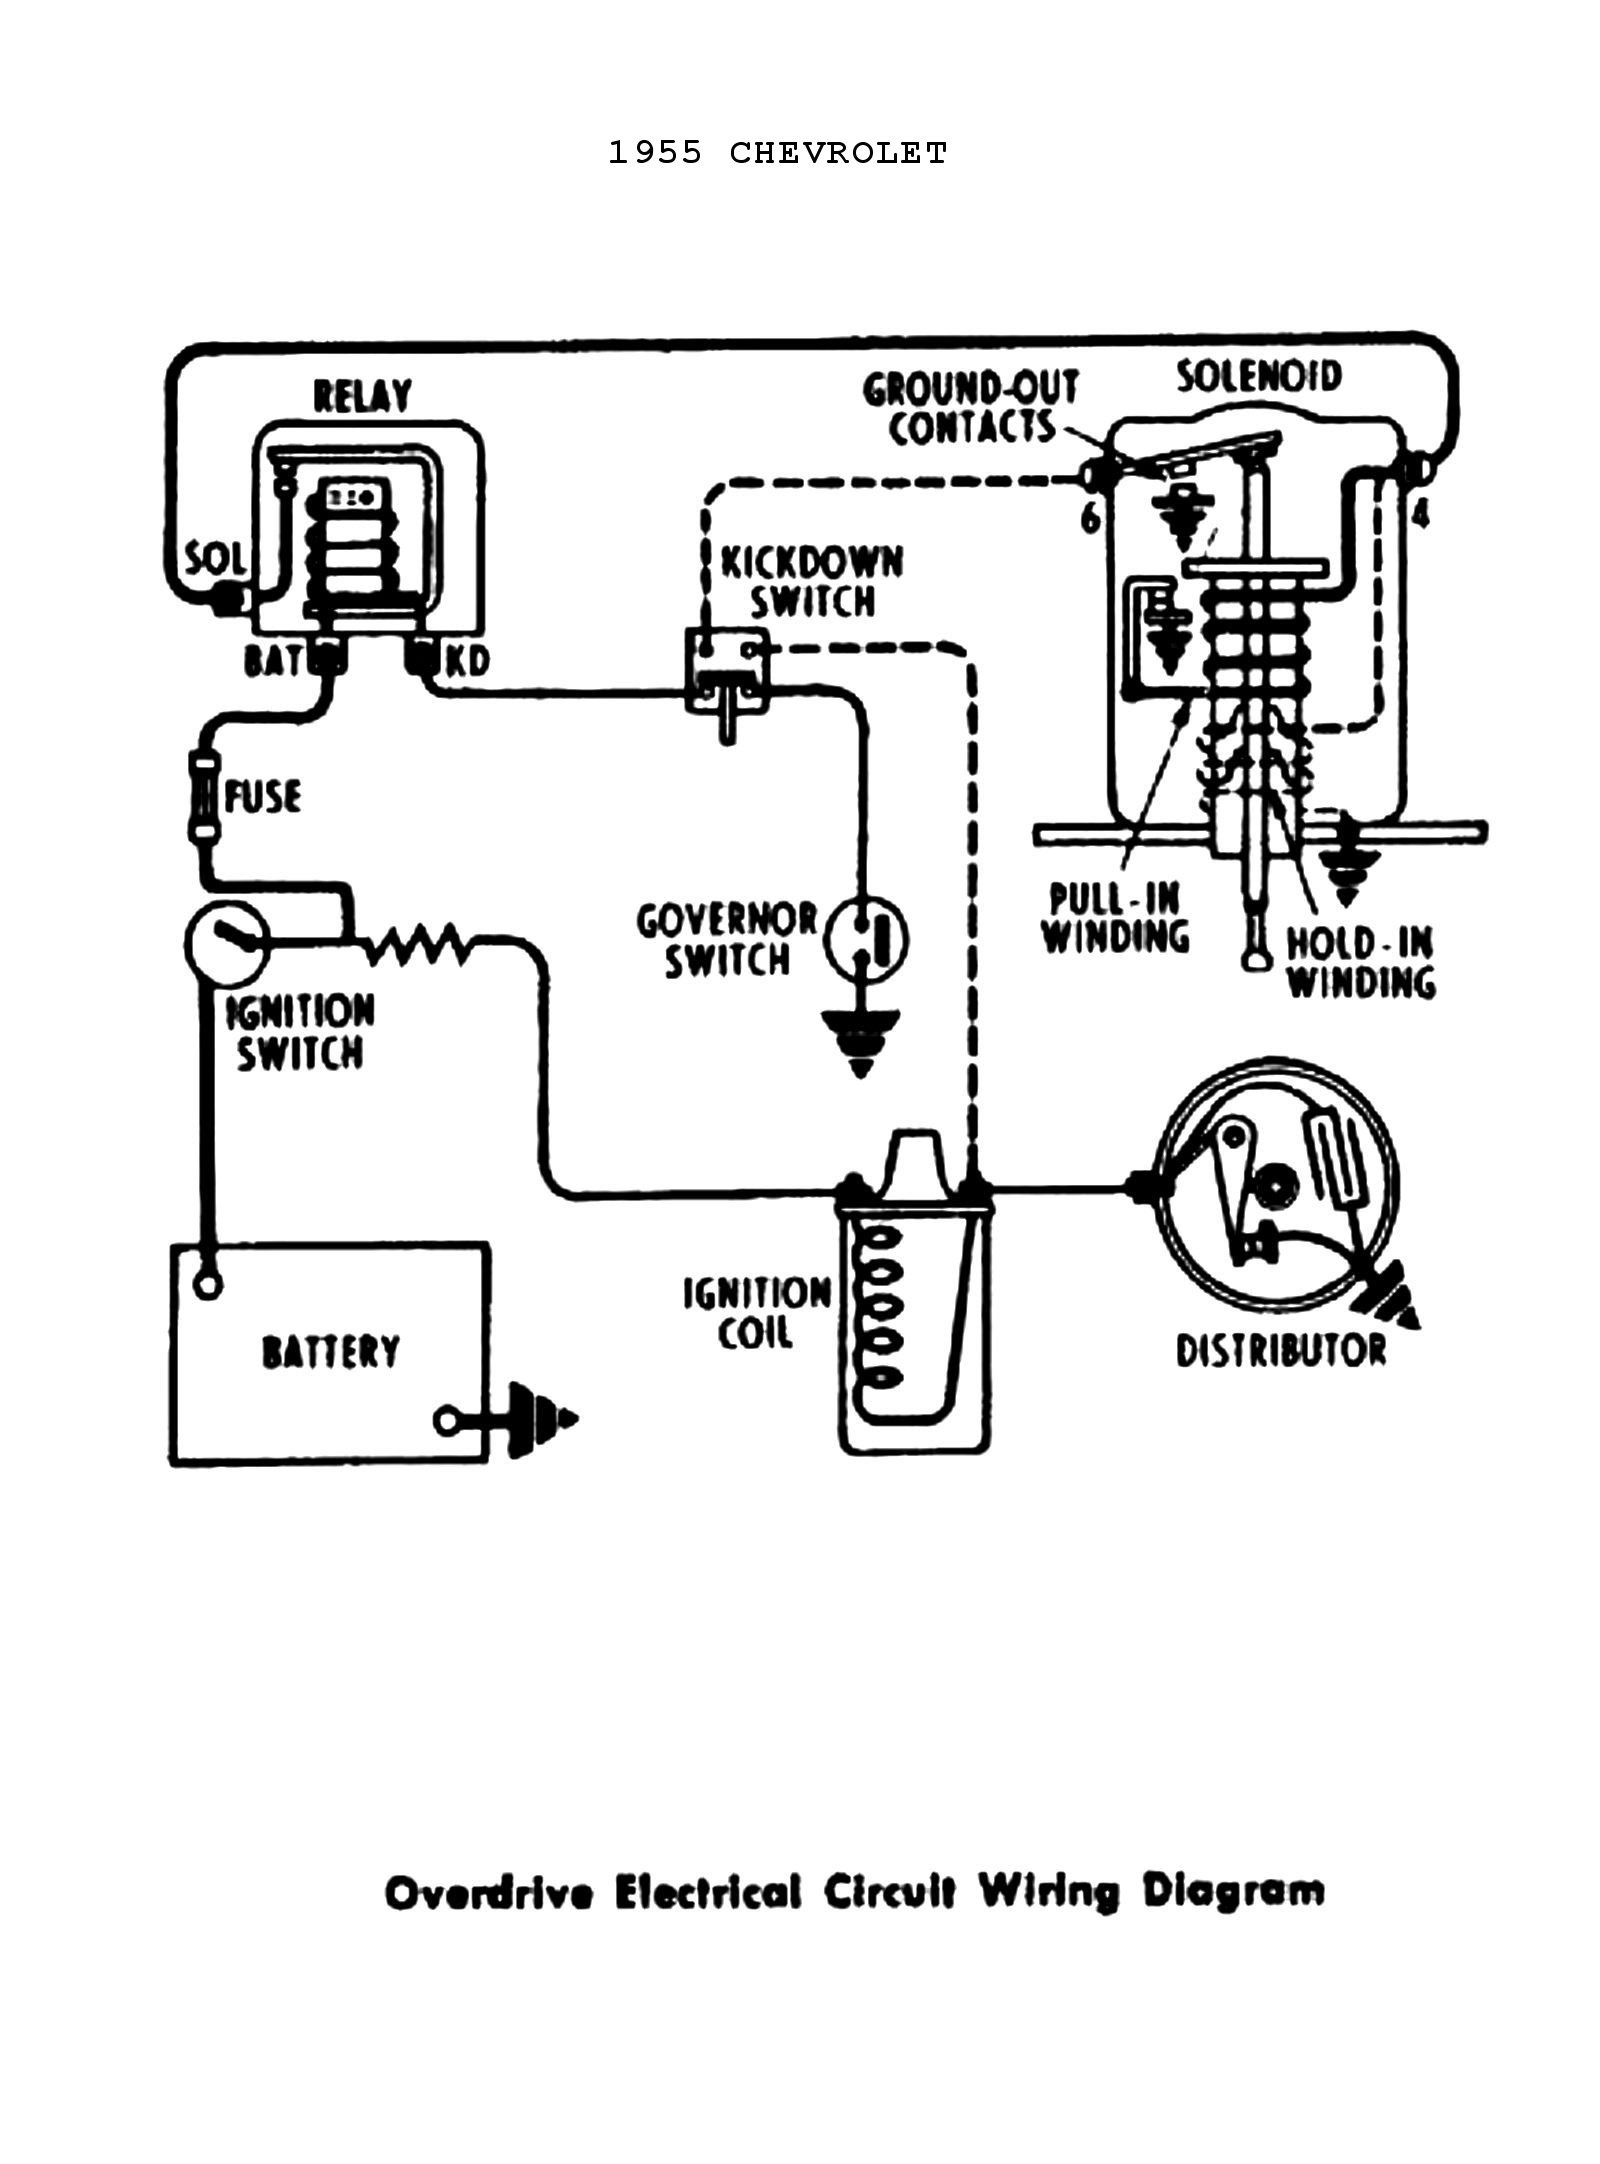 216 chevy engine diagram chevy wiring diagrams